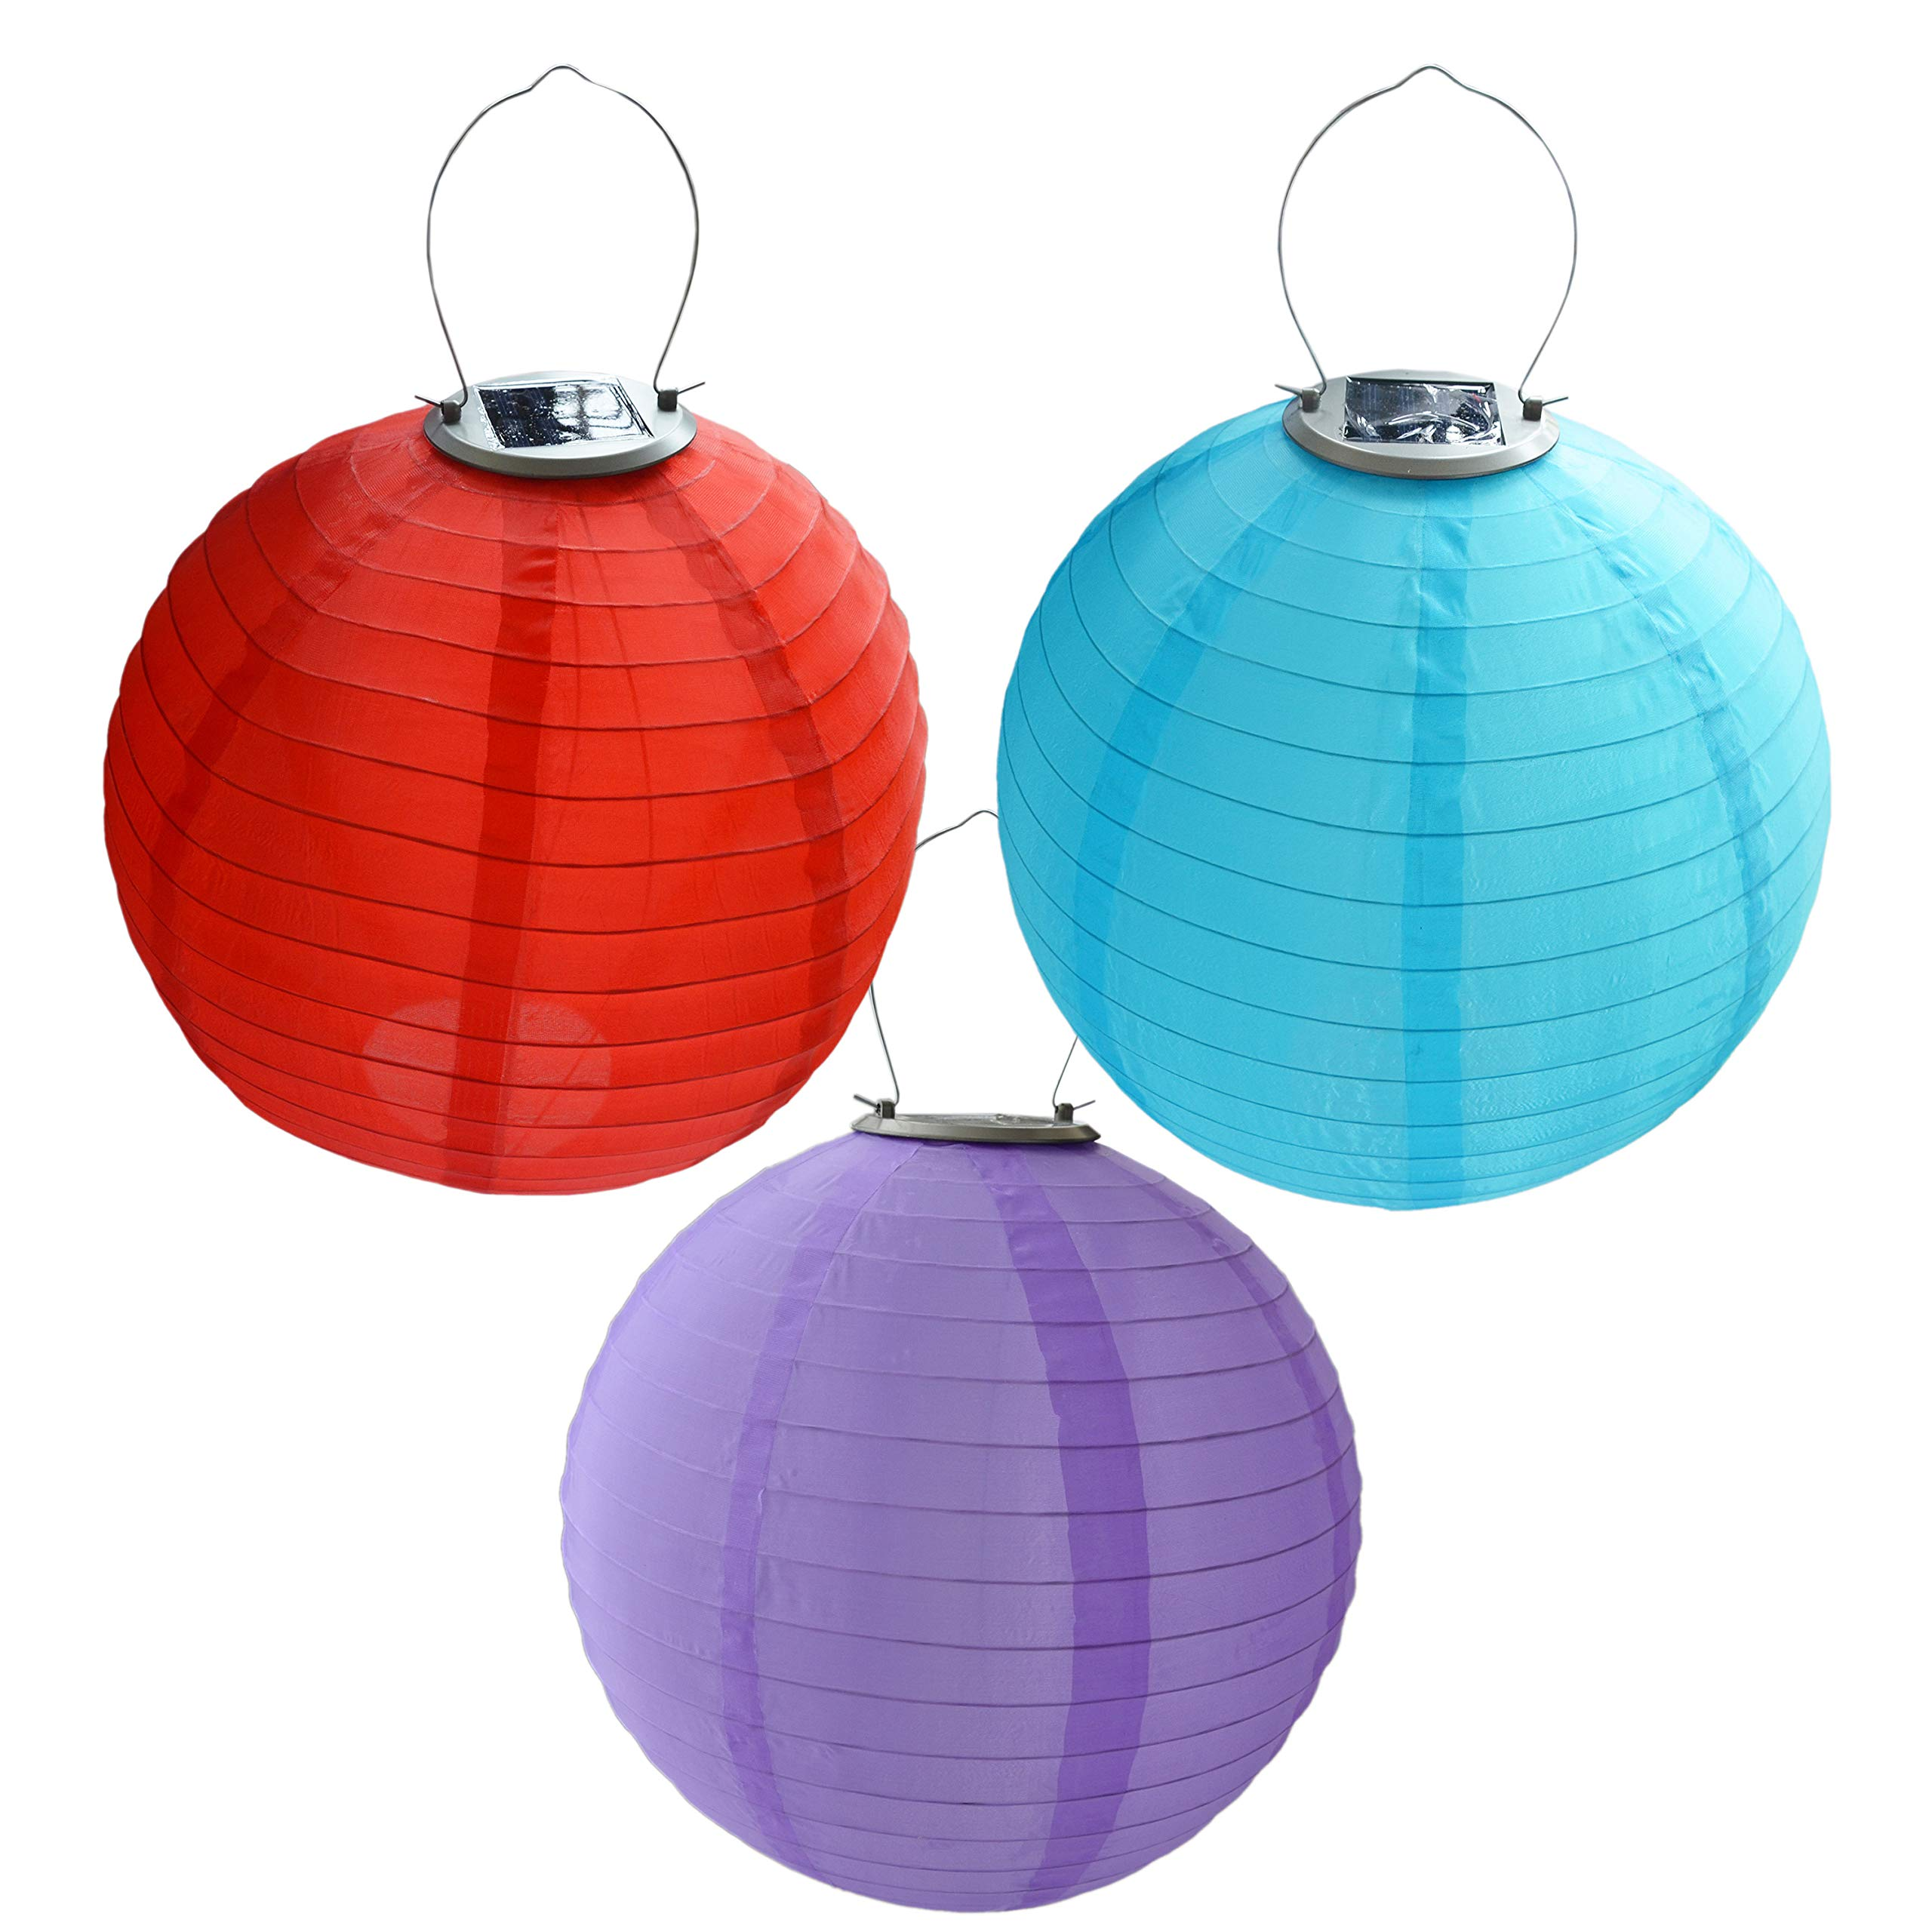 HKBAYI 3PCS/set 30cm Solar Powered Hanging Oriental 12'' 12inch Weatherproof Rechargeable Nylon Chinese Lanterns with 1W 5050SMD LED light Bulb and AA Battery - Red Purple and Blue